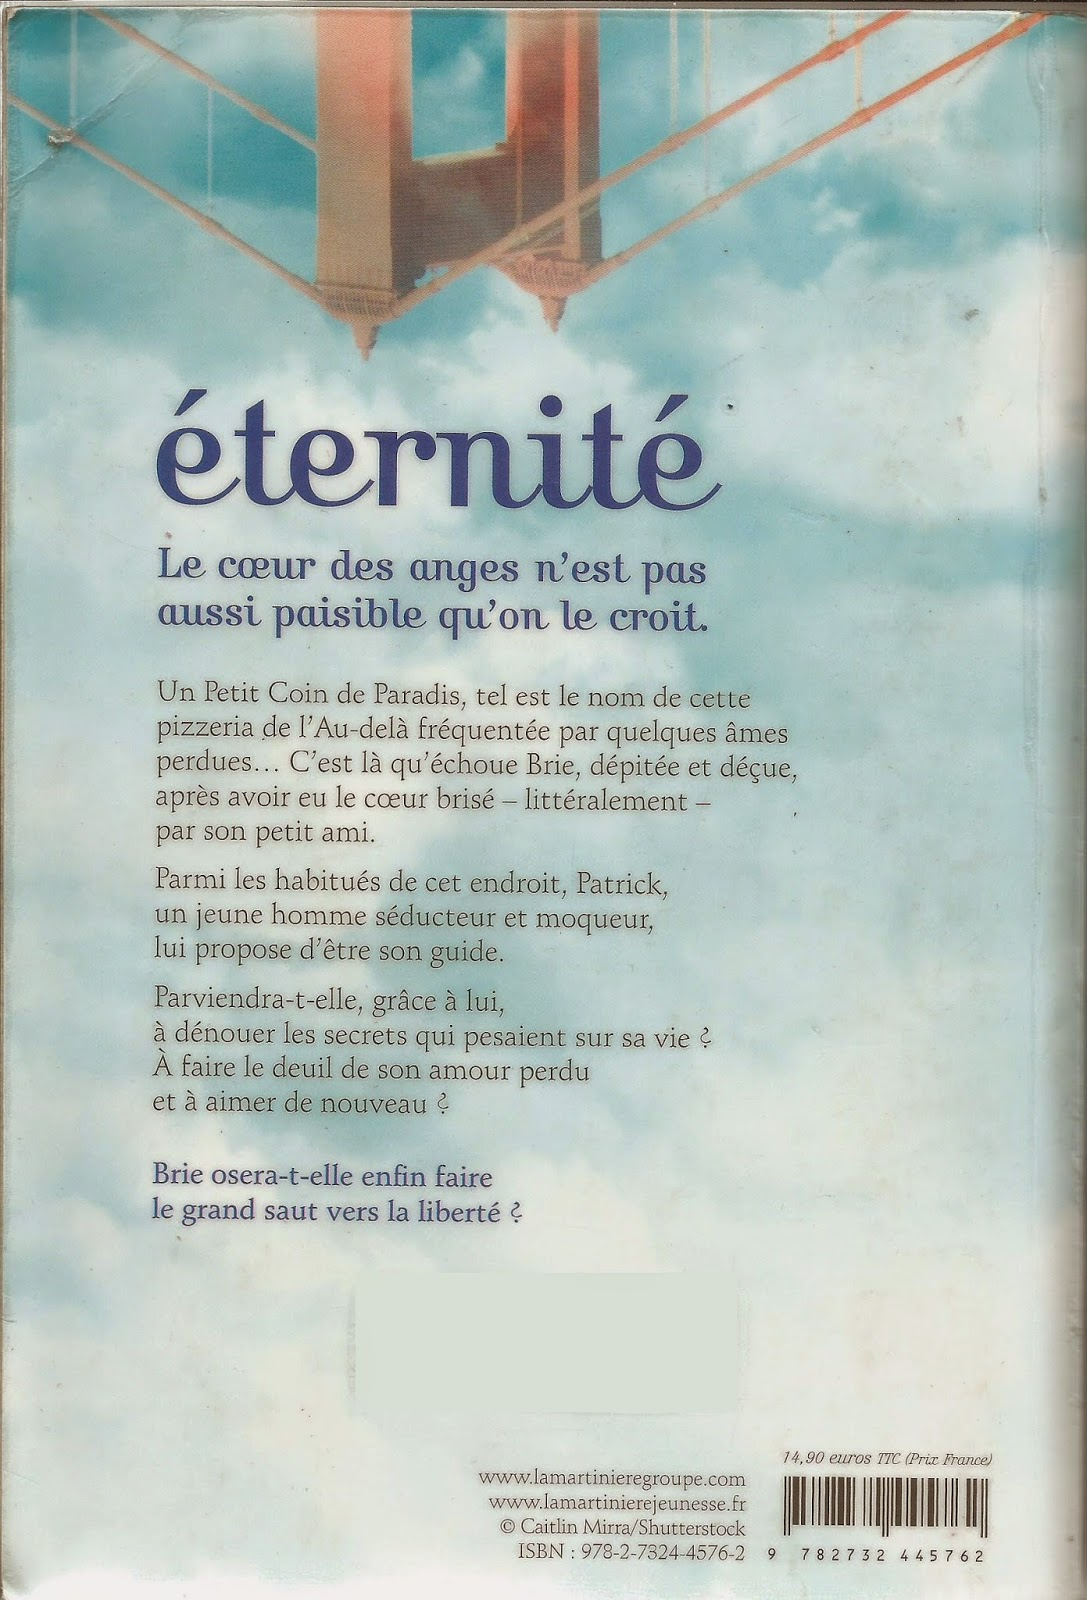 Eternité Jess Rothenberg back cover / quatrième de couverture